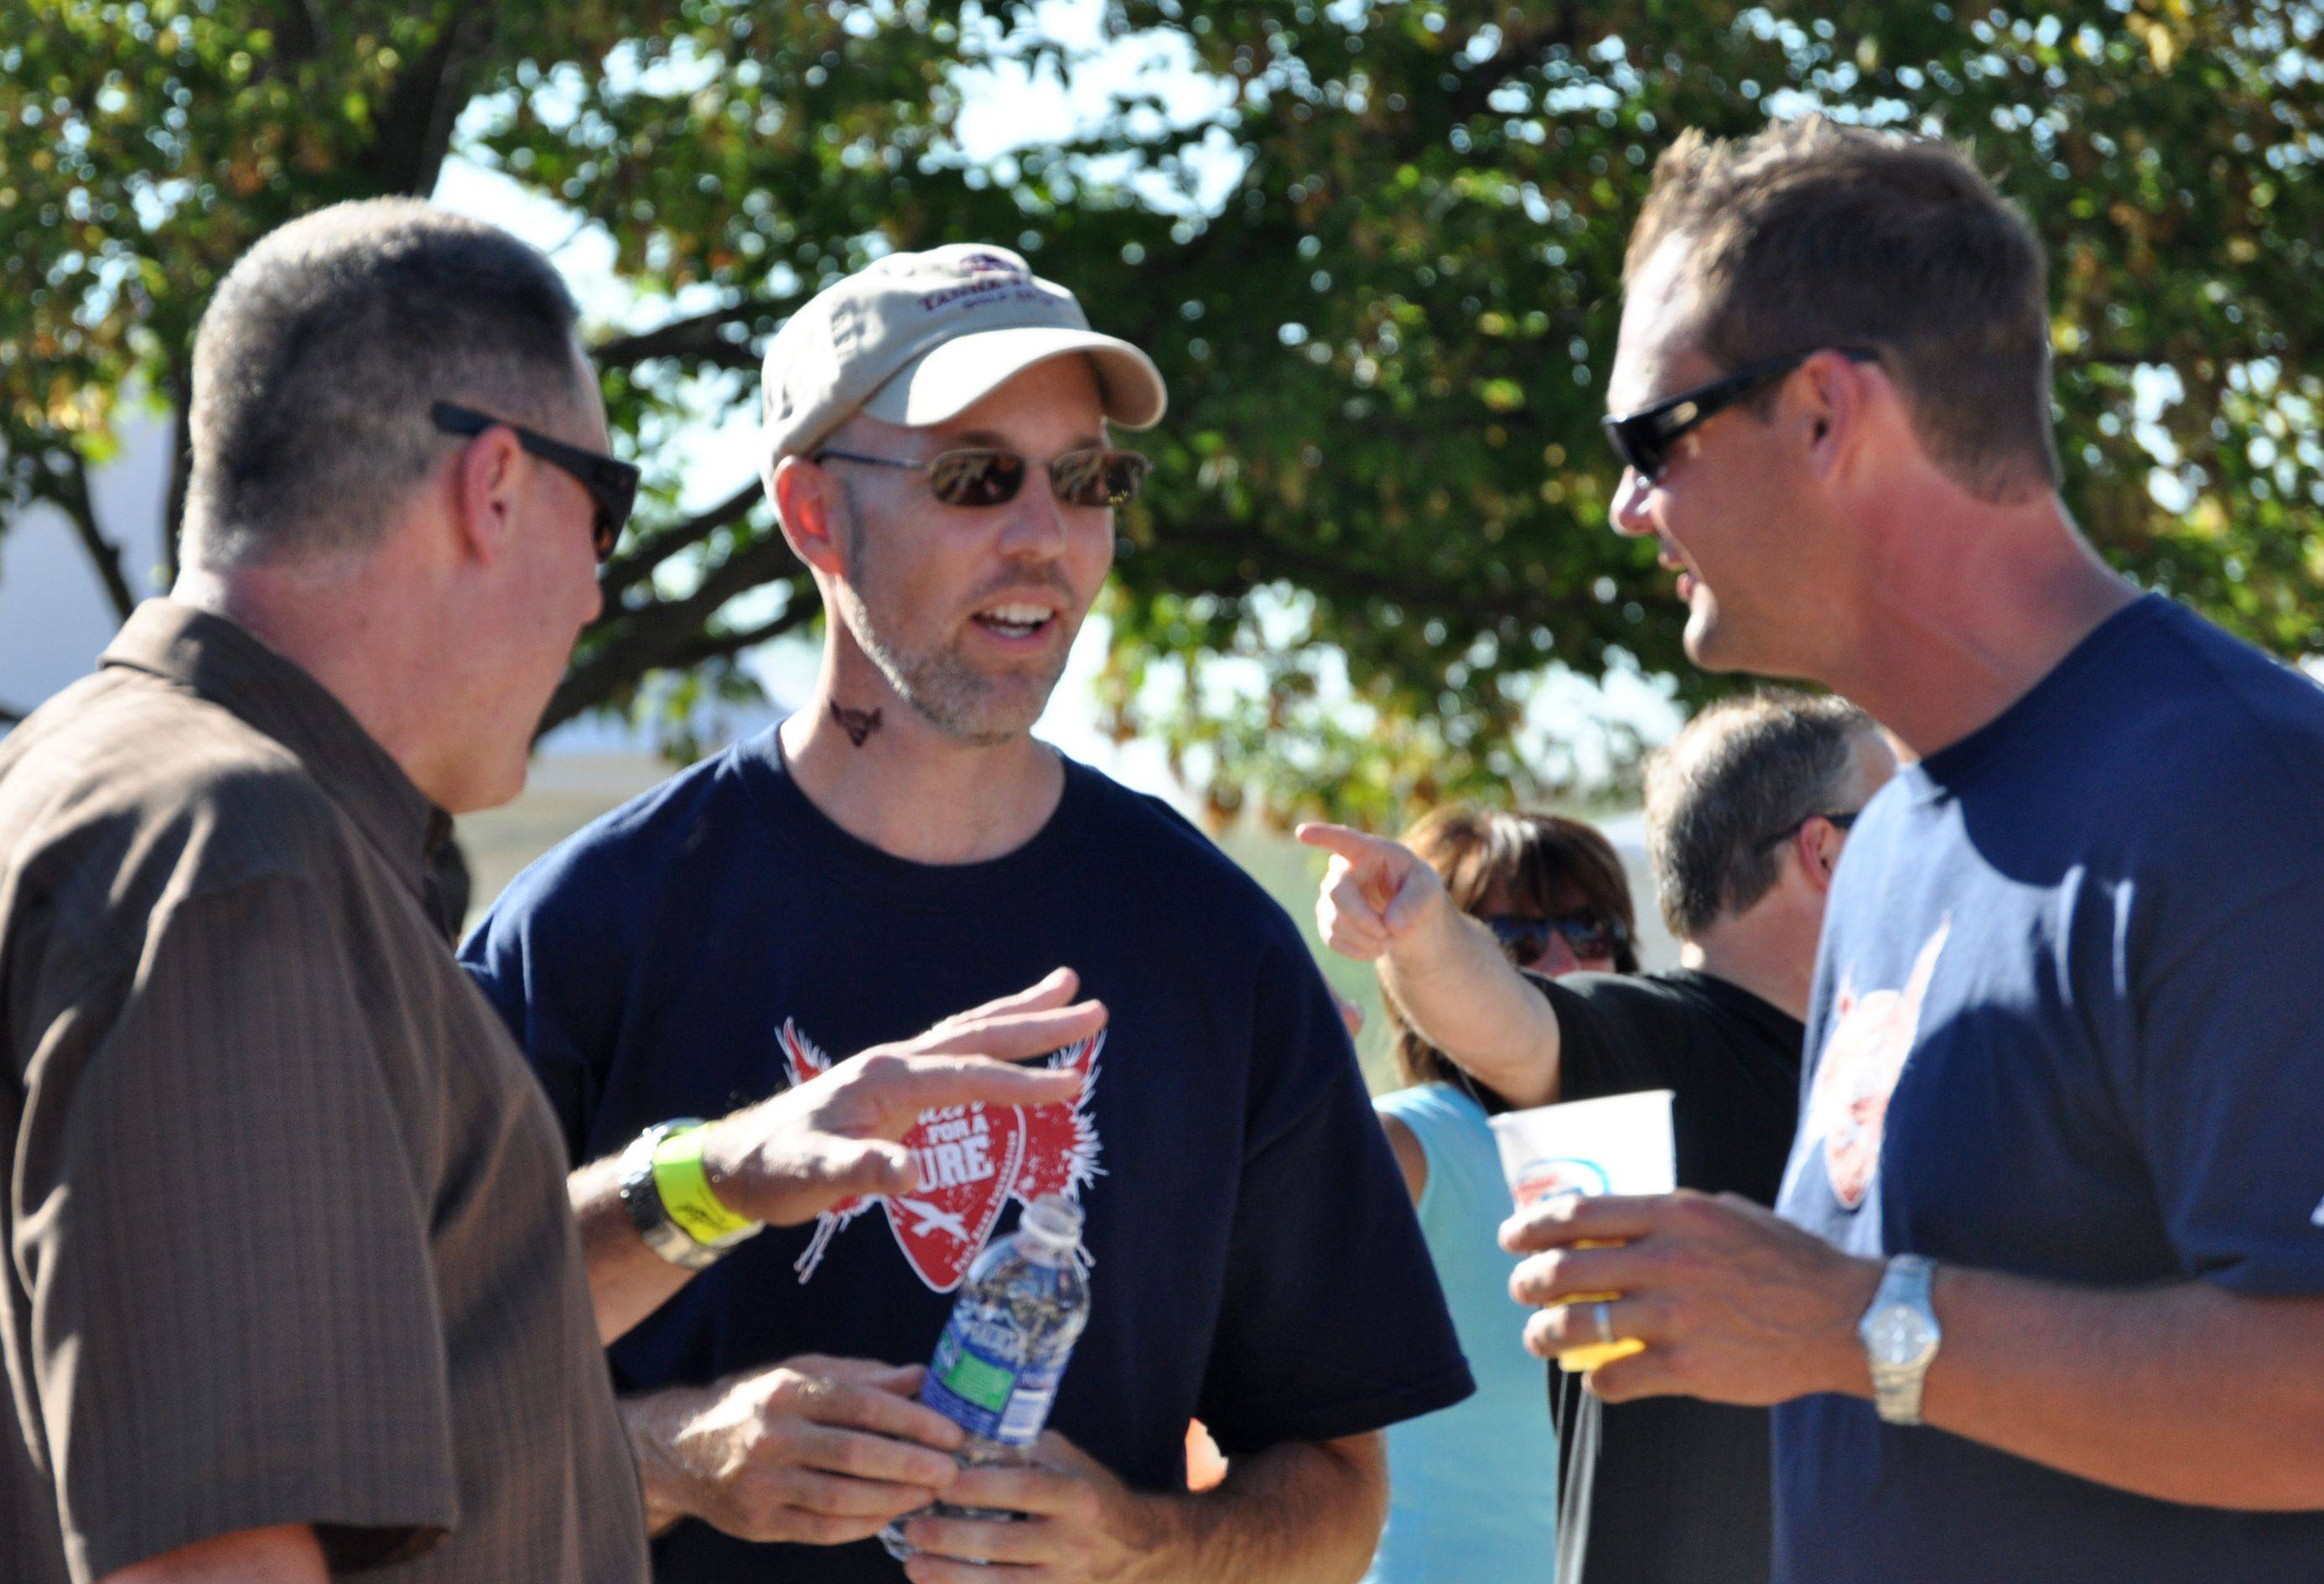 Paul Ruby, center, talks to guests at last year�s Concert for a Cure benefit for Parkinson�s disease. This year�s fundraiser for the Paul Ruby Foundation starts at 3 p.m. Aug. 27 at Tanna Farms, 39W808 Hughes Road, Geneva.